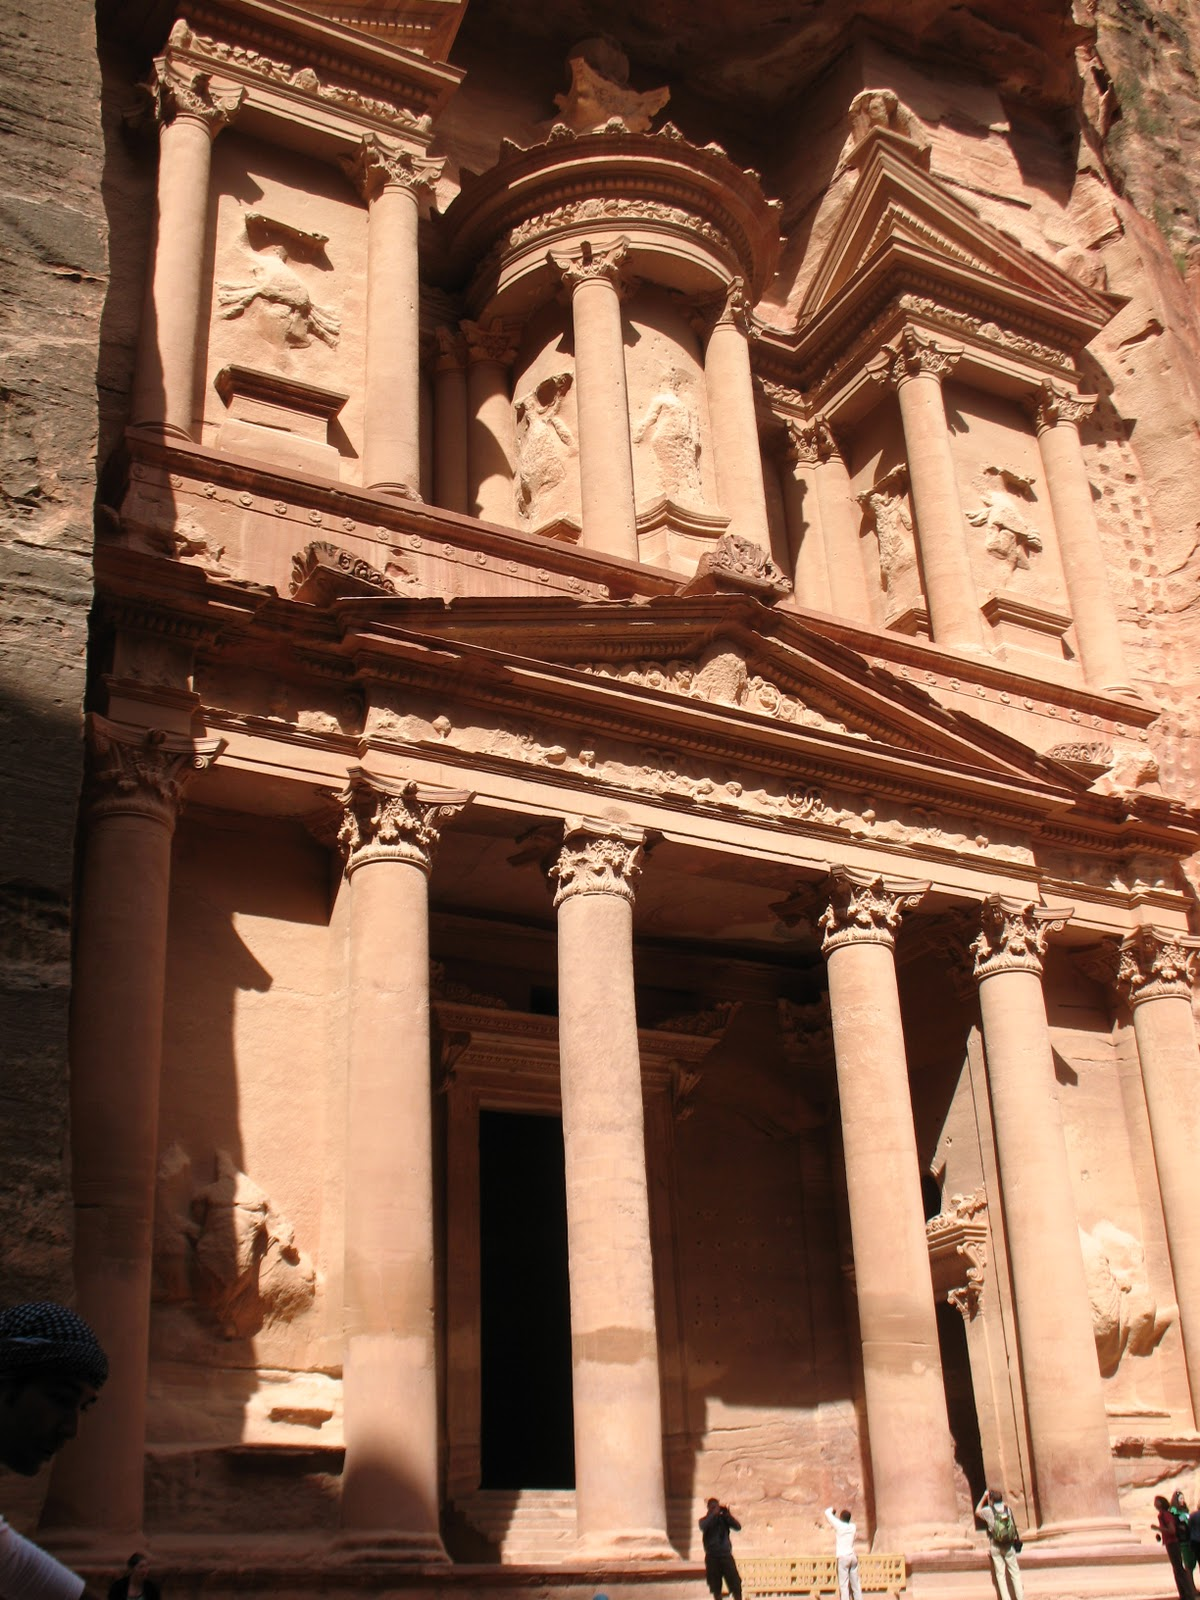 Happy New Year 2013 3d Wallpaper Wnp Wallpapers Amp Pictures Petra Jordan Wallpapers New